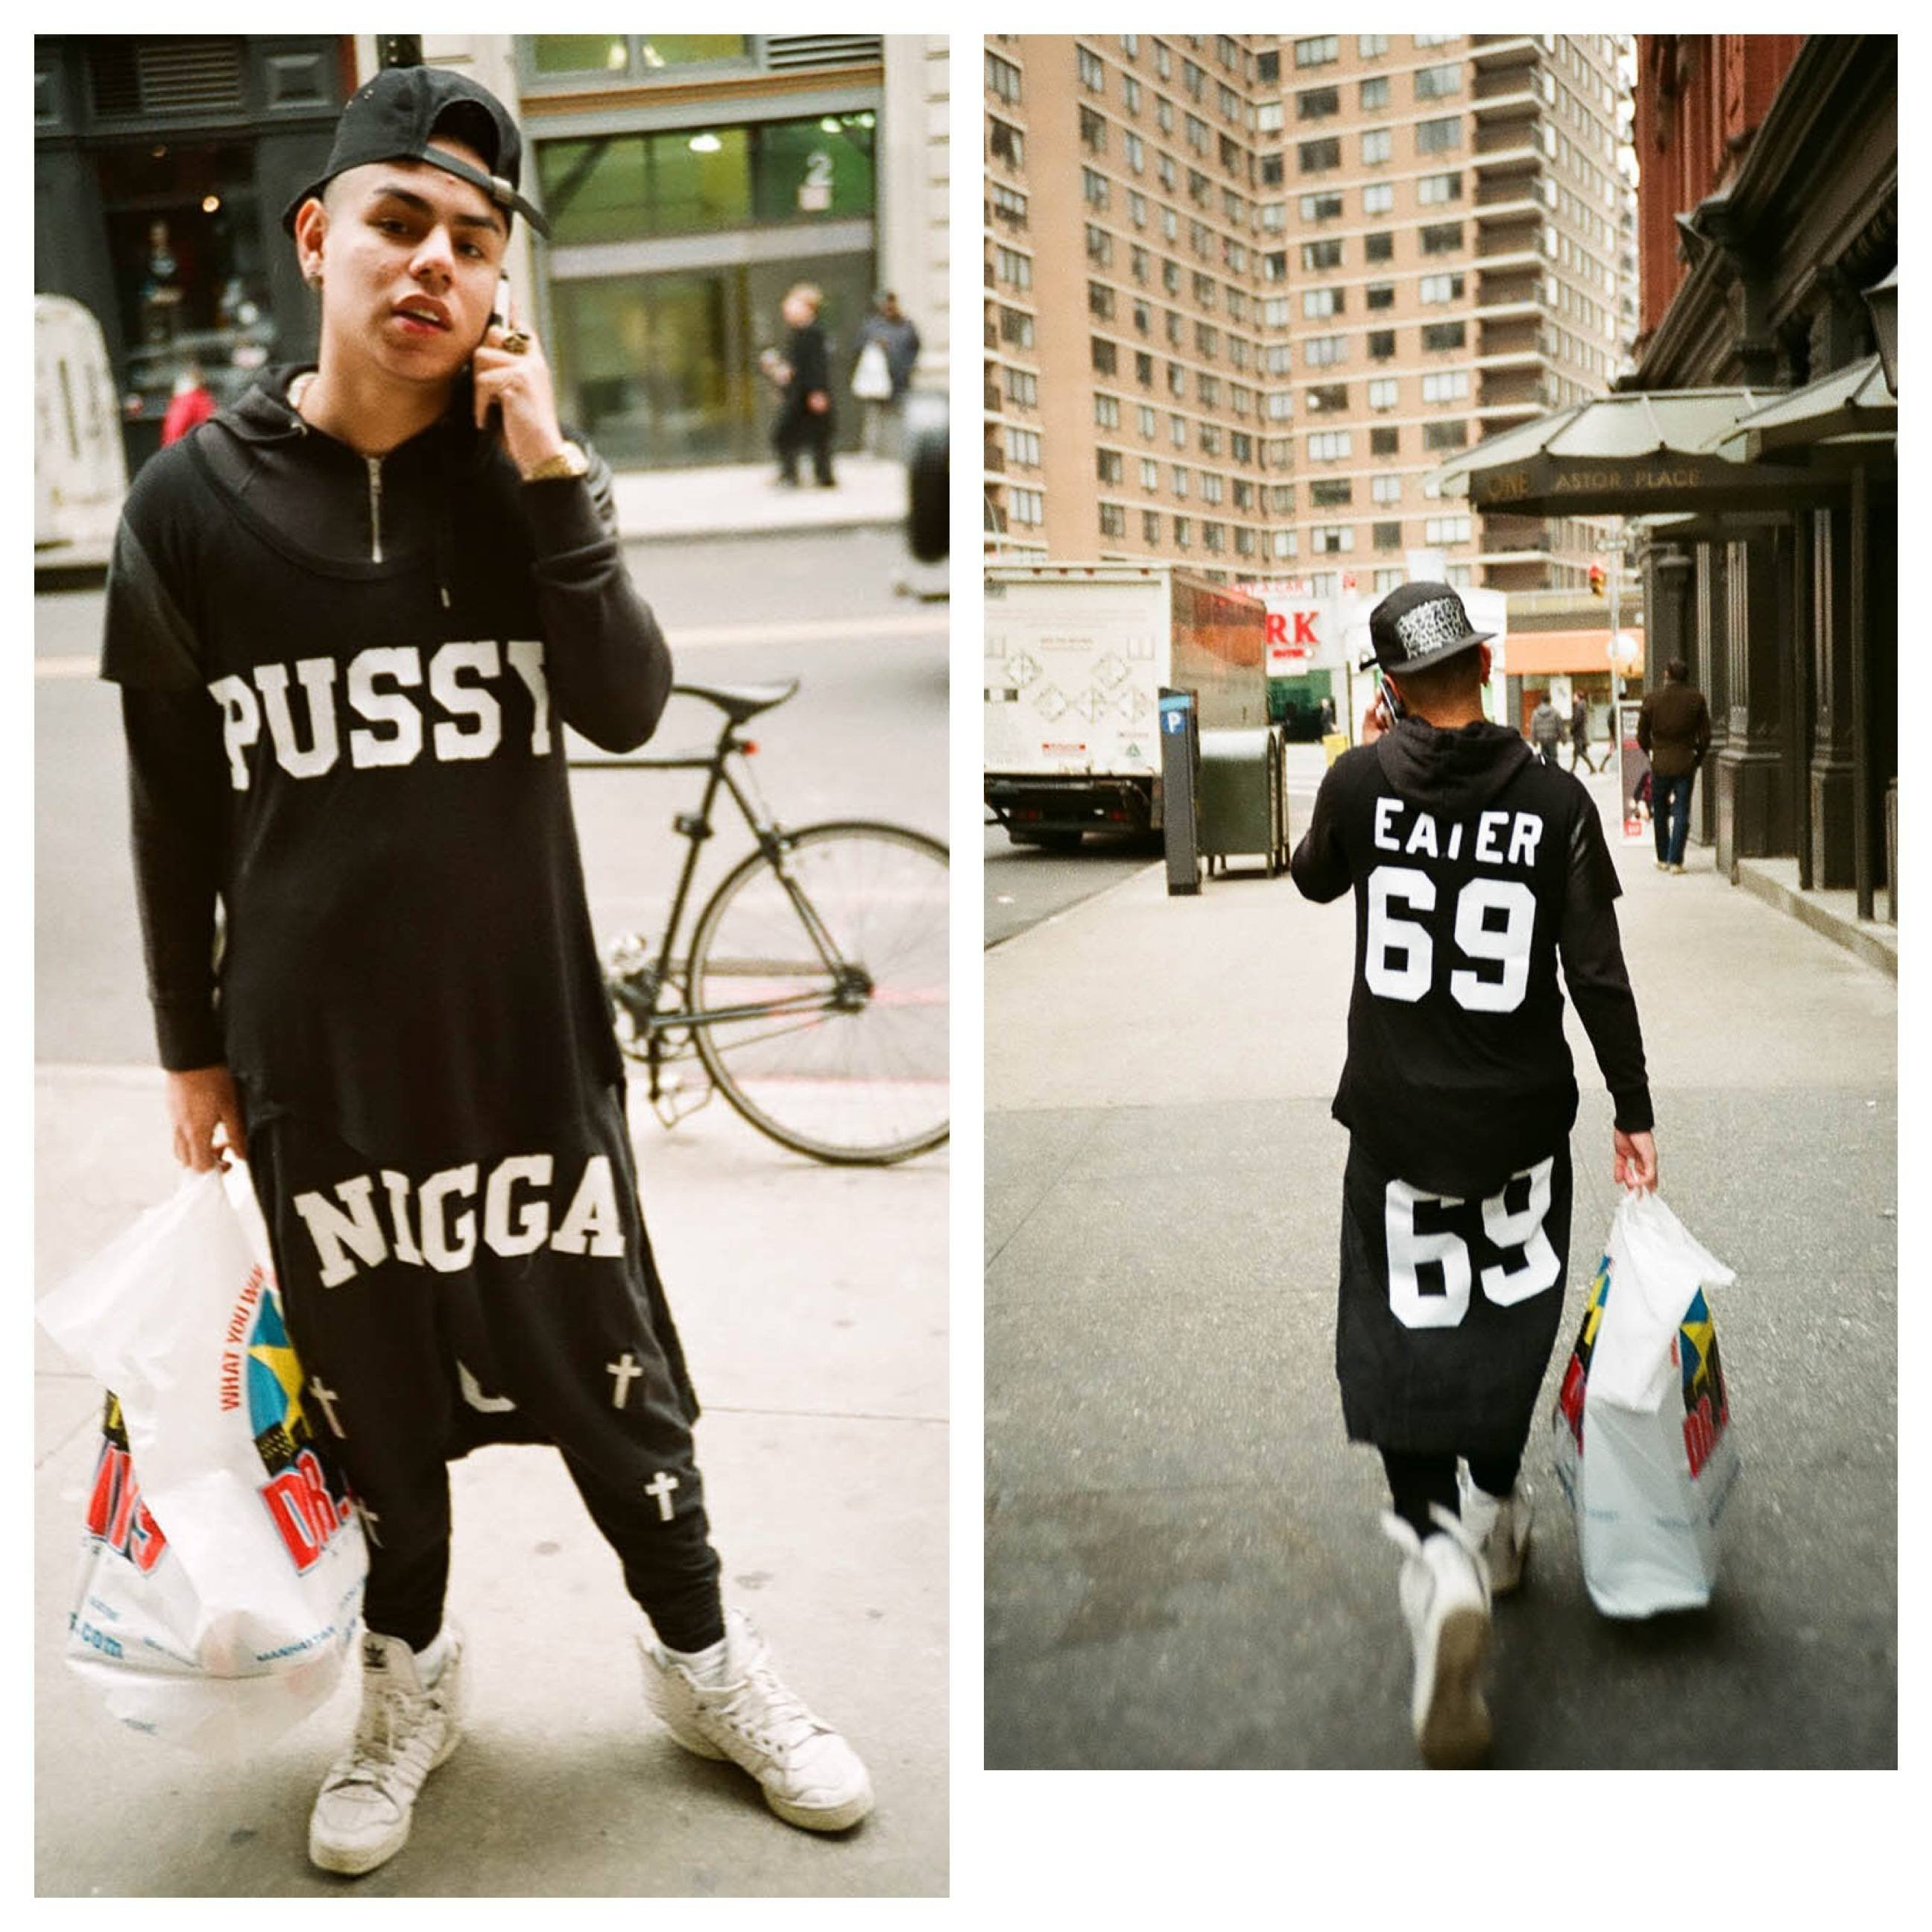 Shorts over joggers? : streetwear